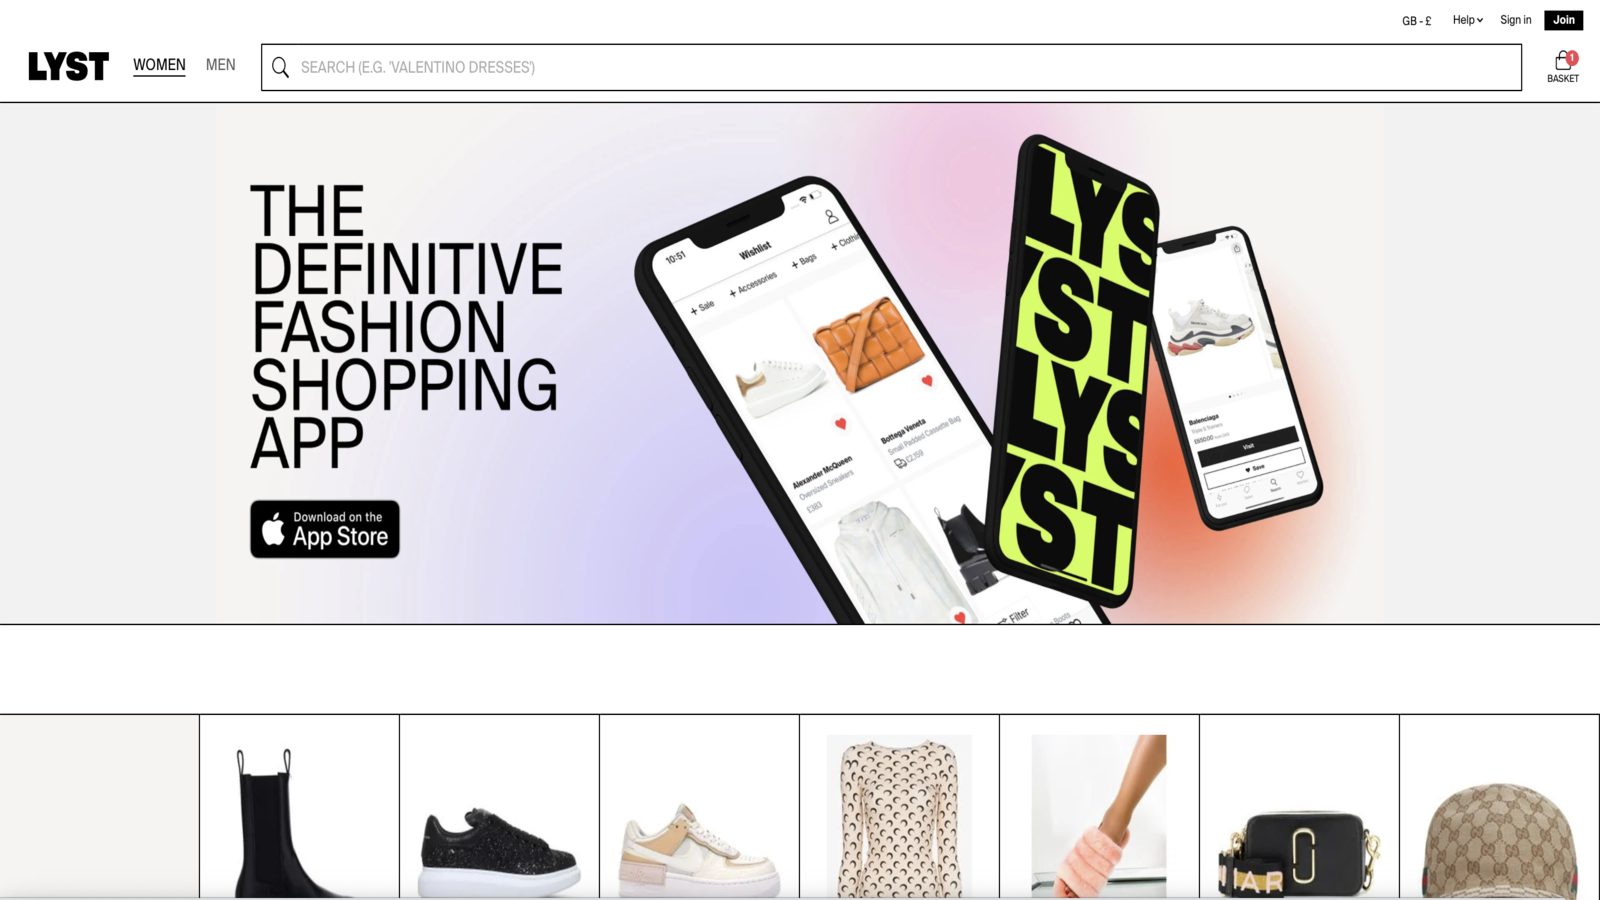 Lyst Home Page